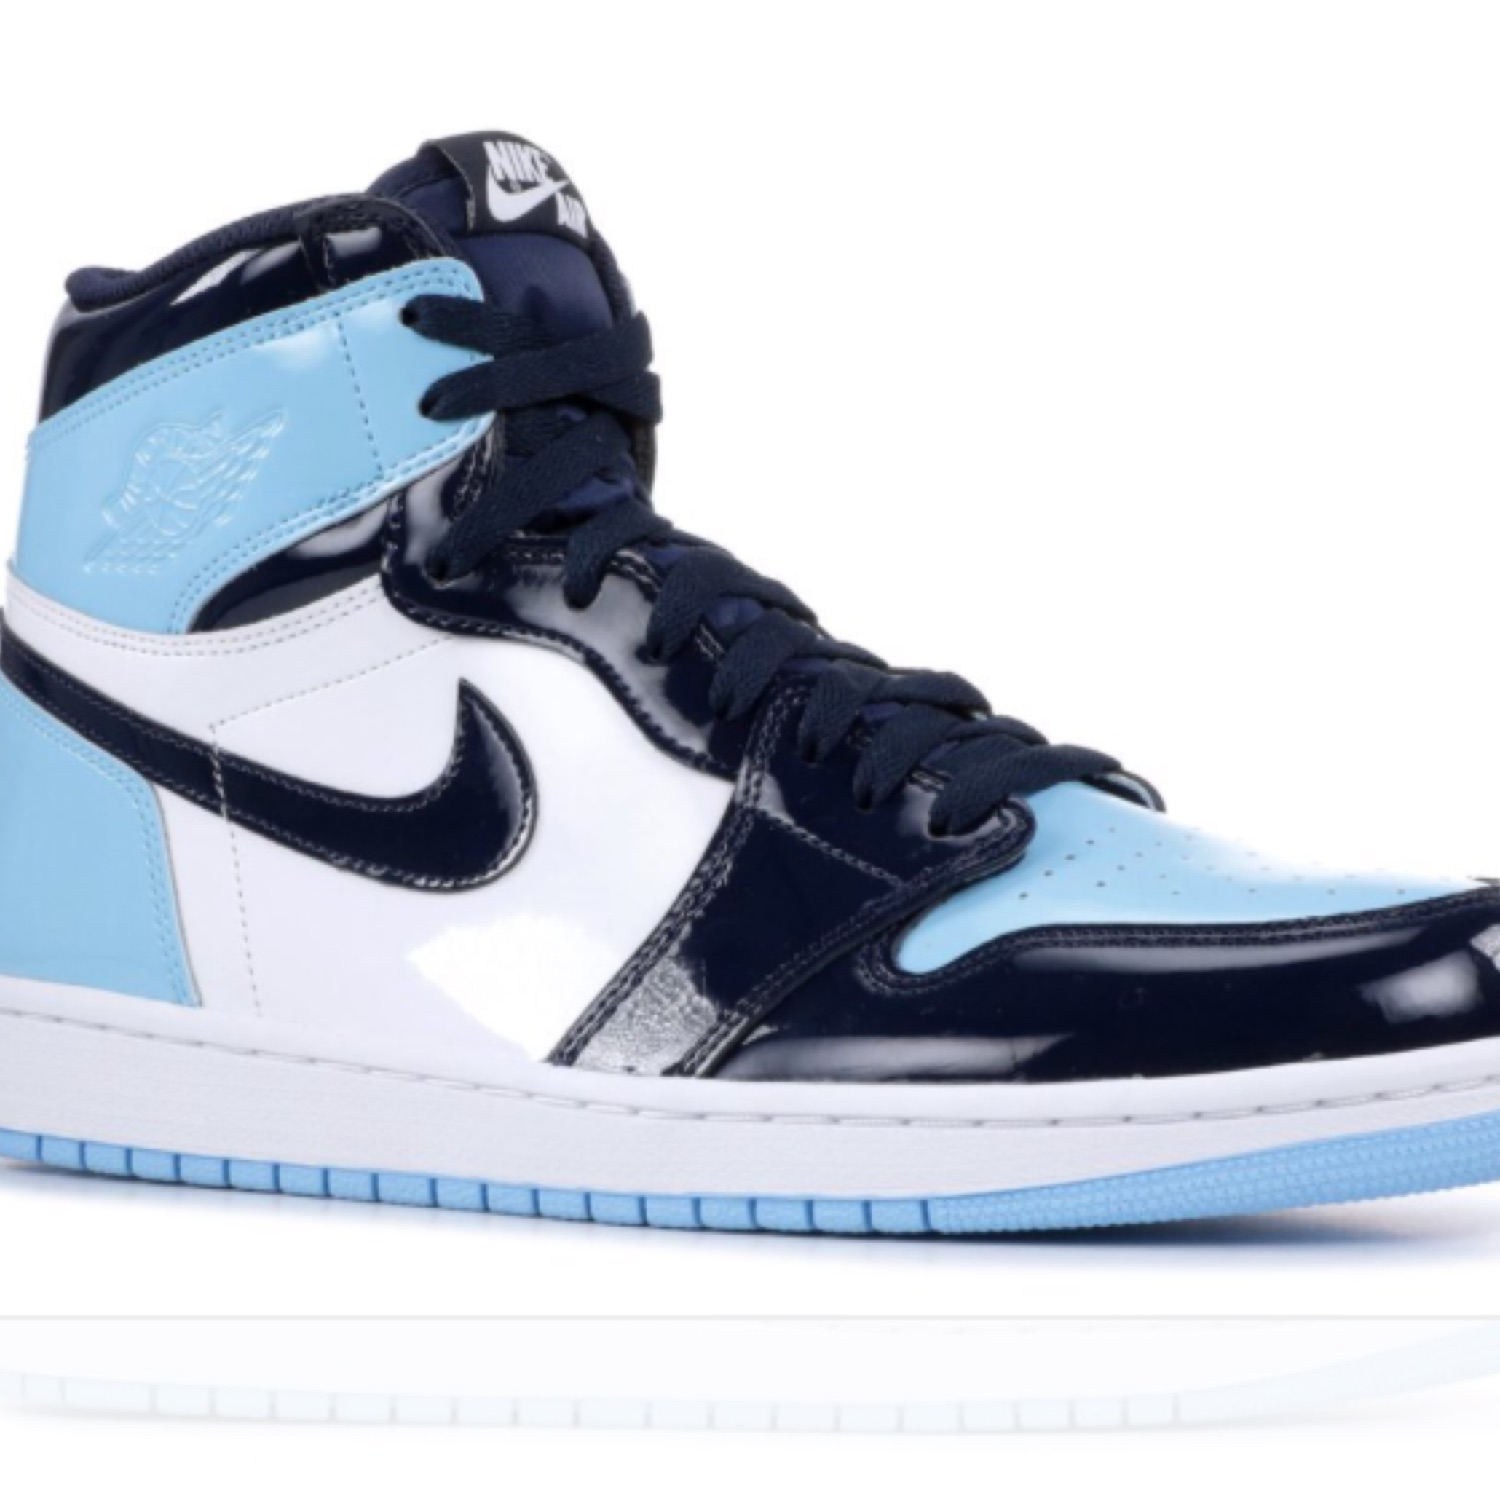 wholesale dealer 3d902 4445a Nike Air Jordan 1 Retro High